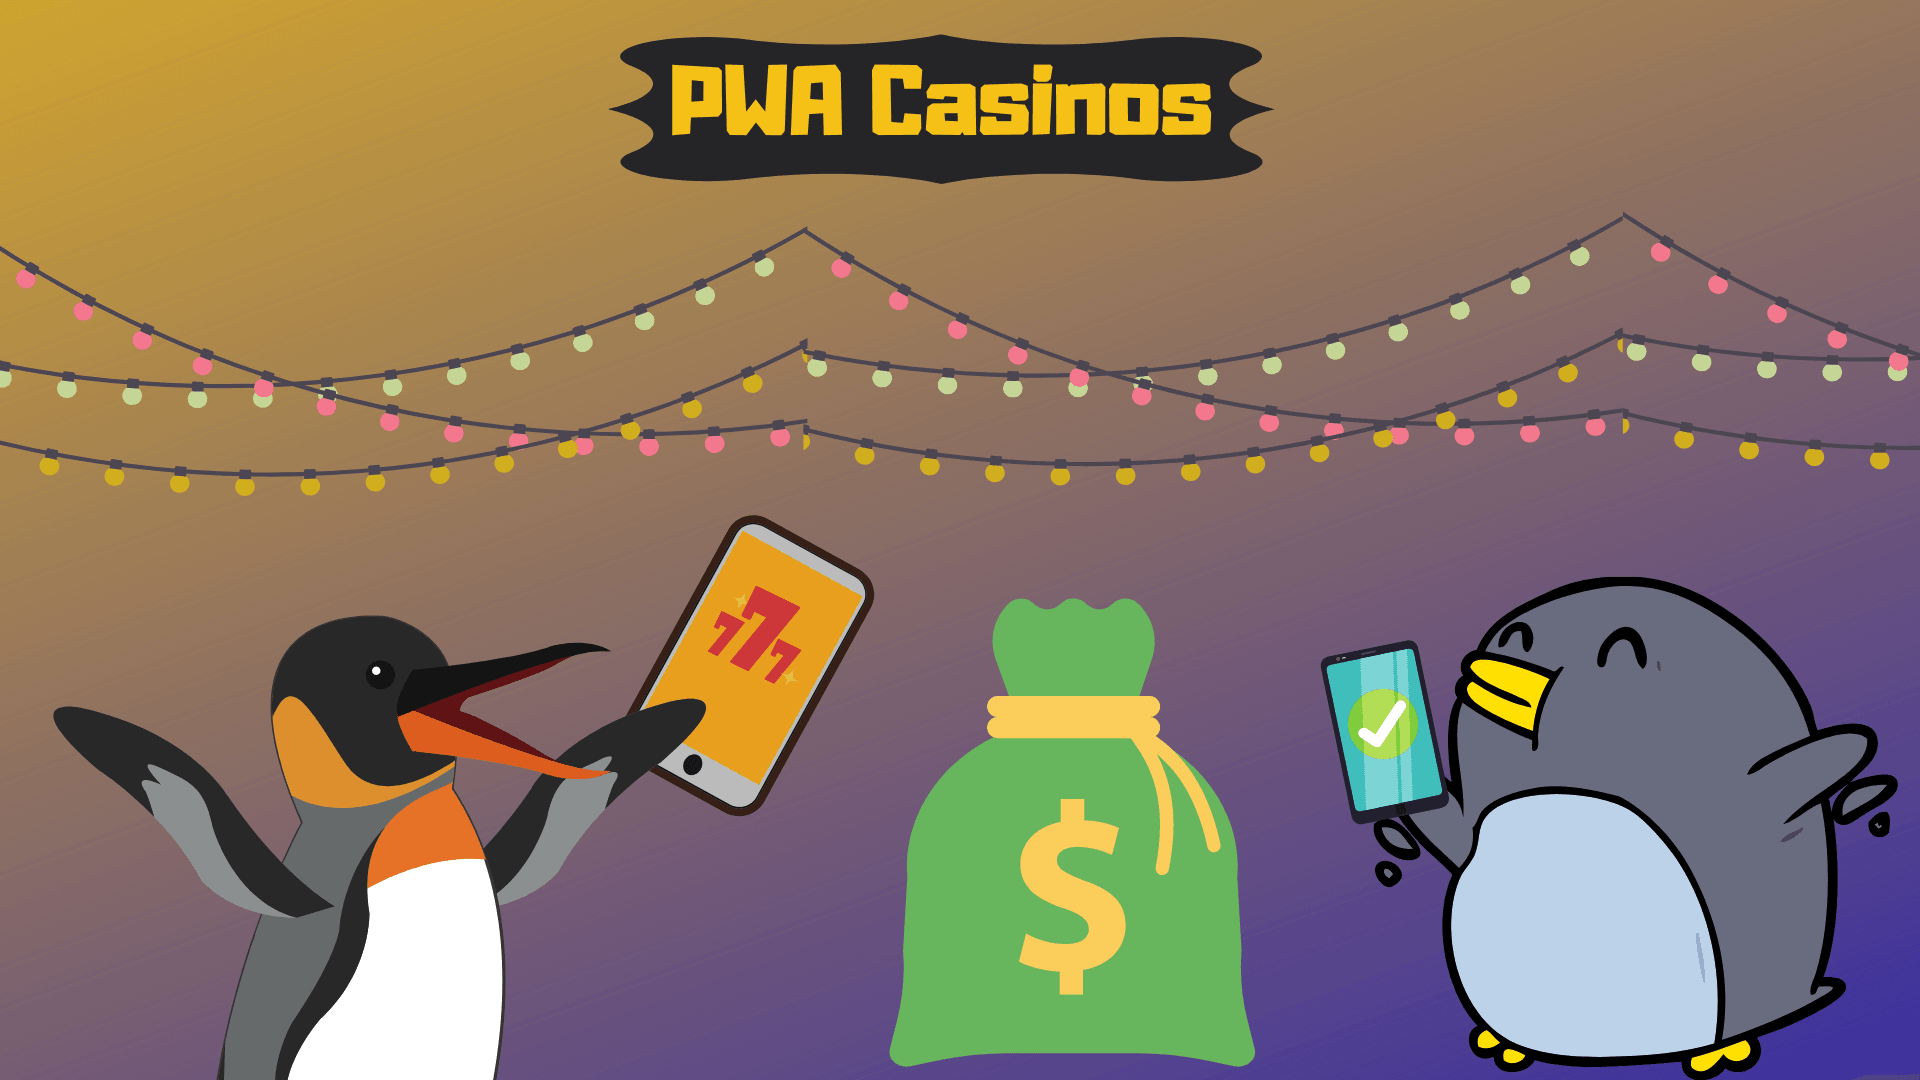 Pwa Casinos